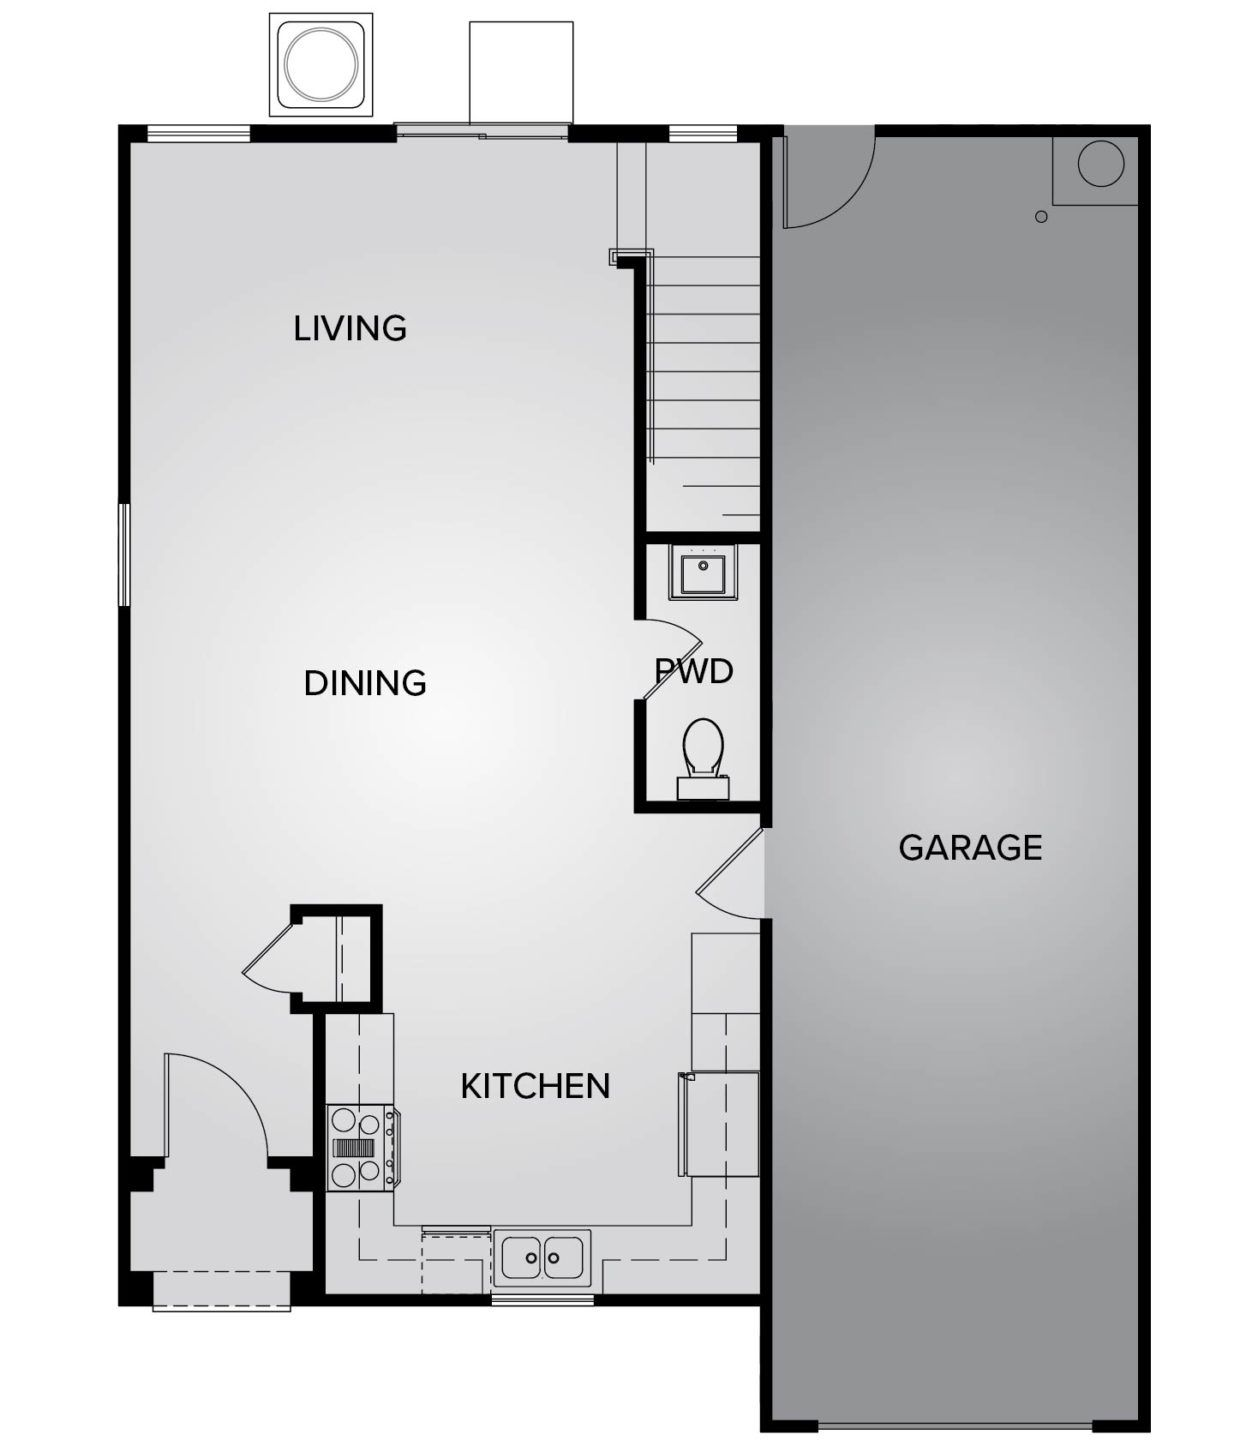 Photo of Residence 2 in Sacramento, CA 95823